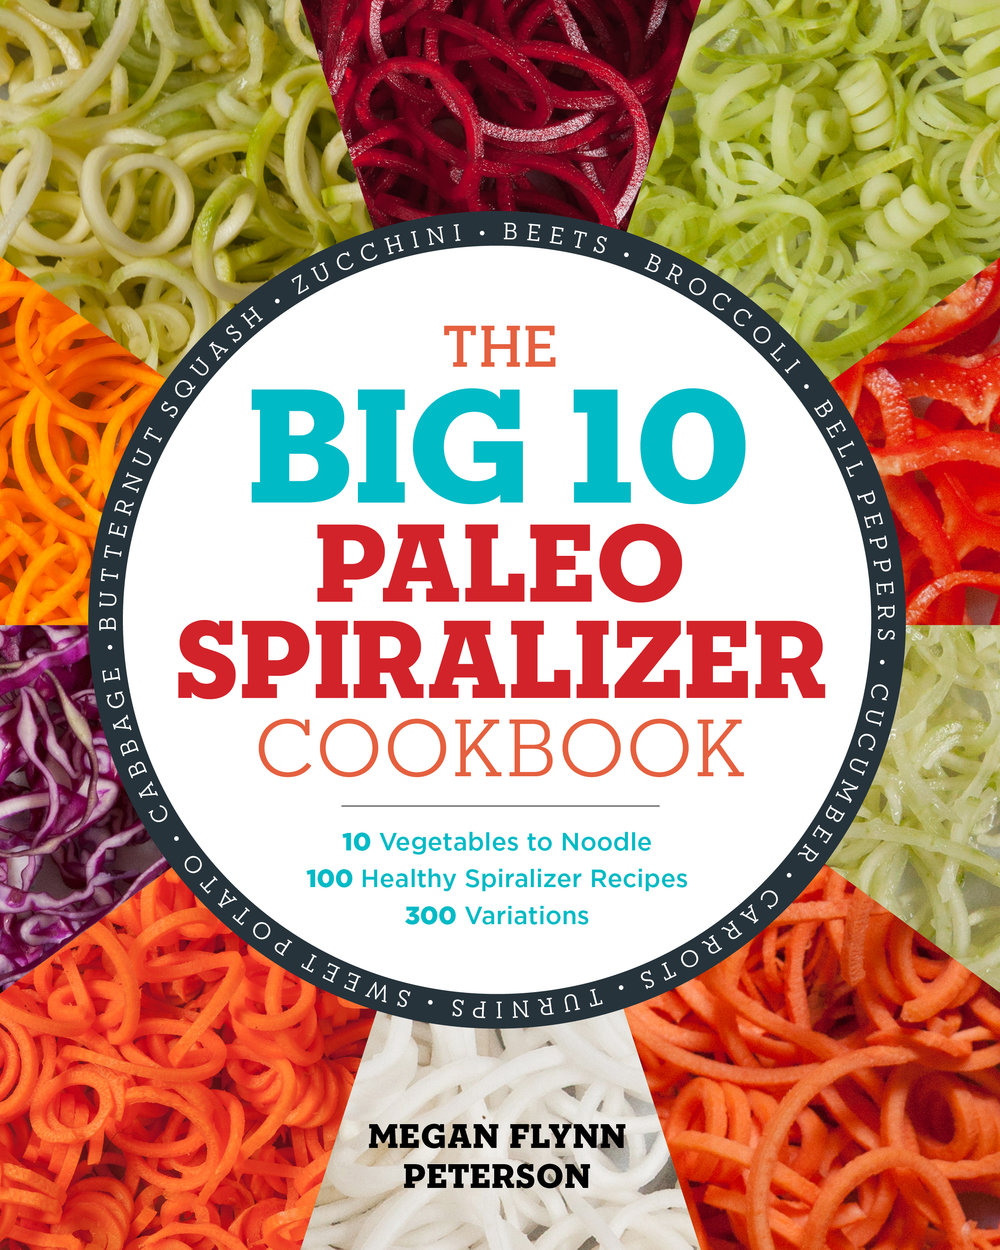 The Big 10 Paleo Spiralizer Cookbook | Freckled Italian